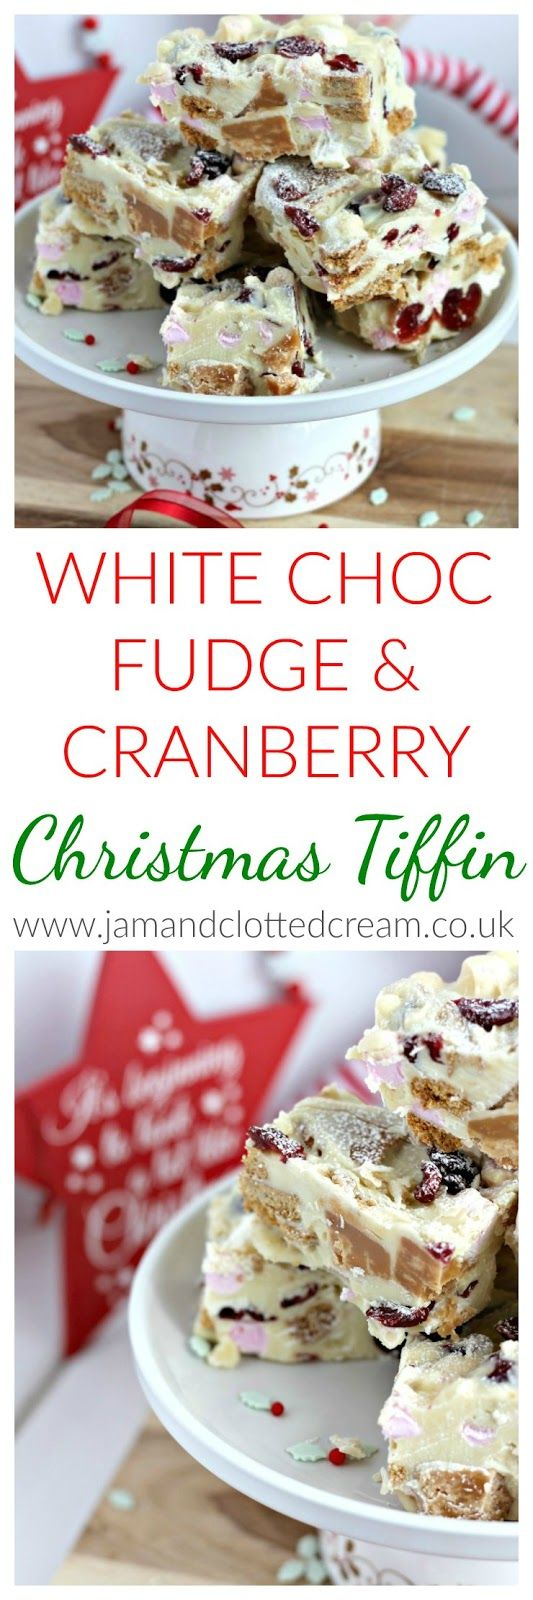 Festive White Chocolate, Fudge & Cranberry Tiffin